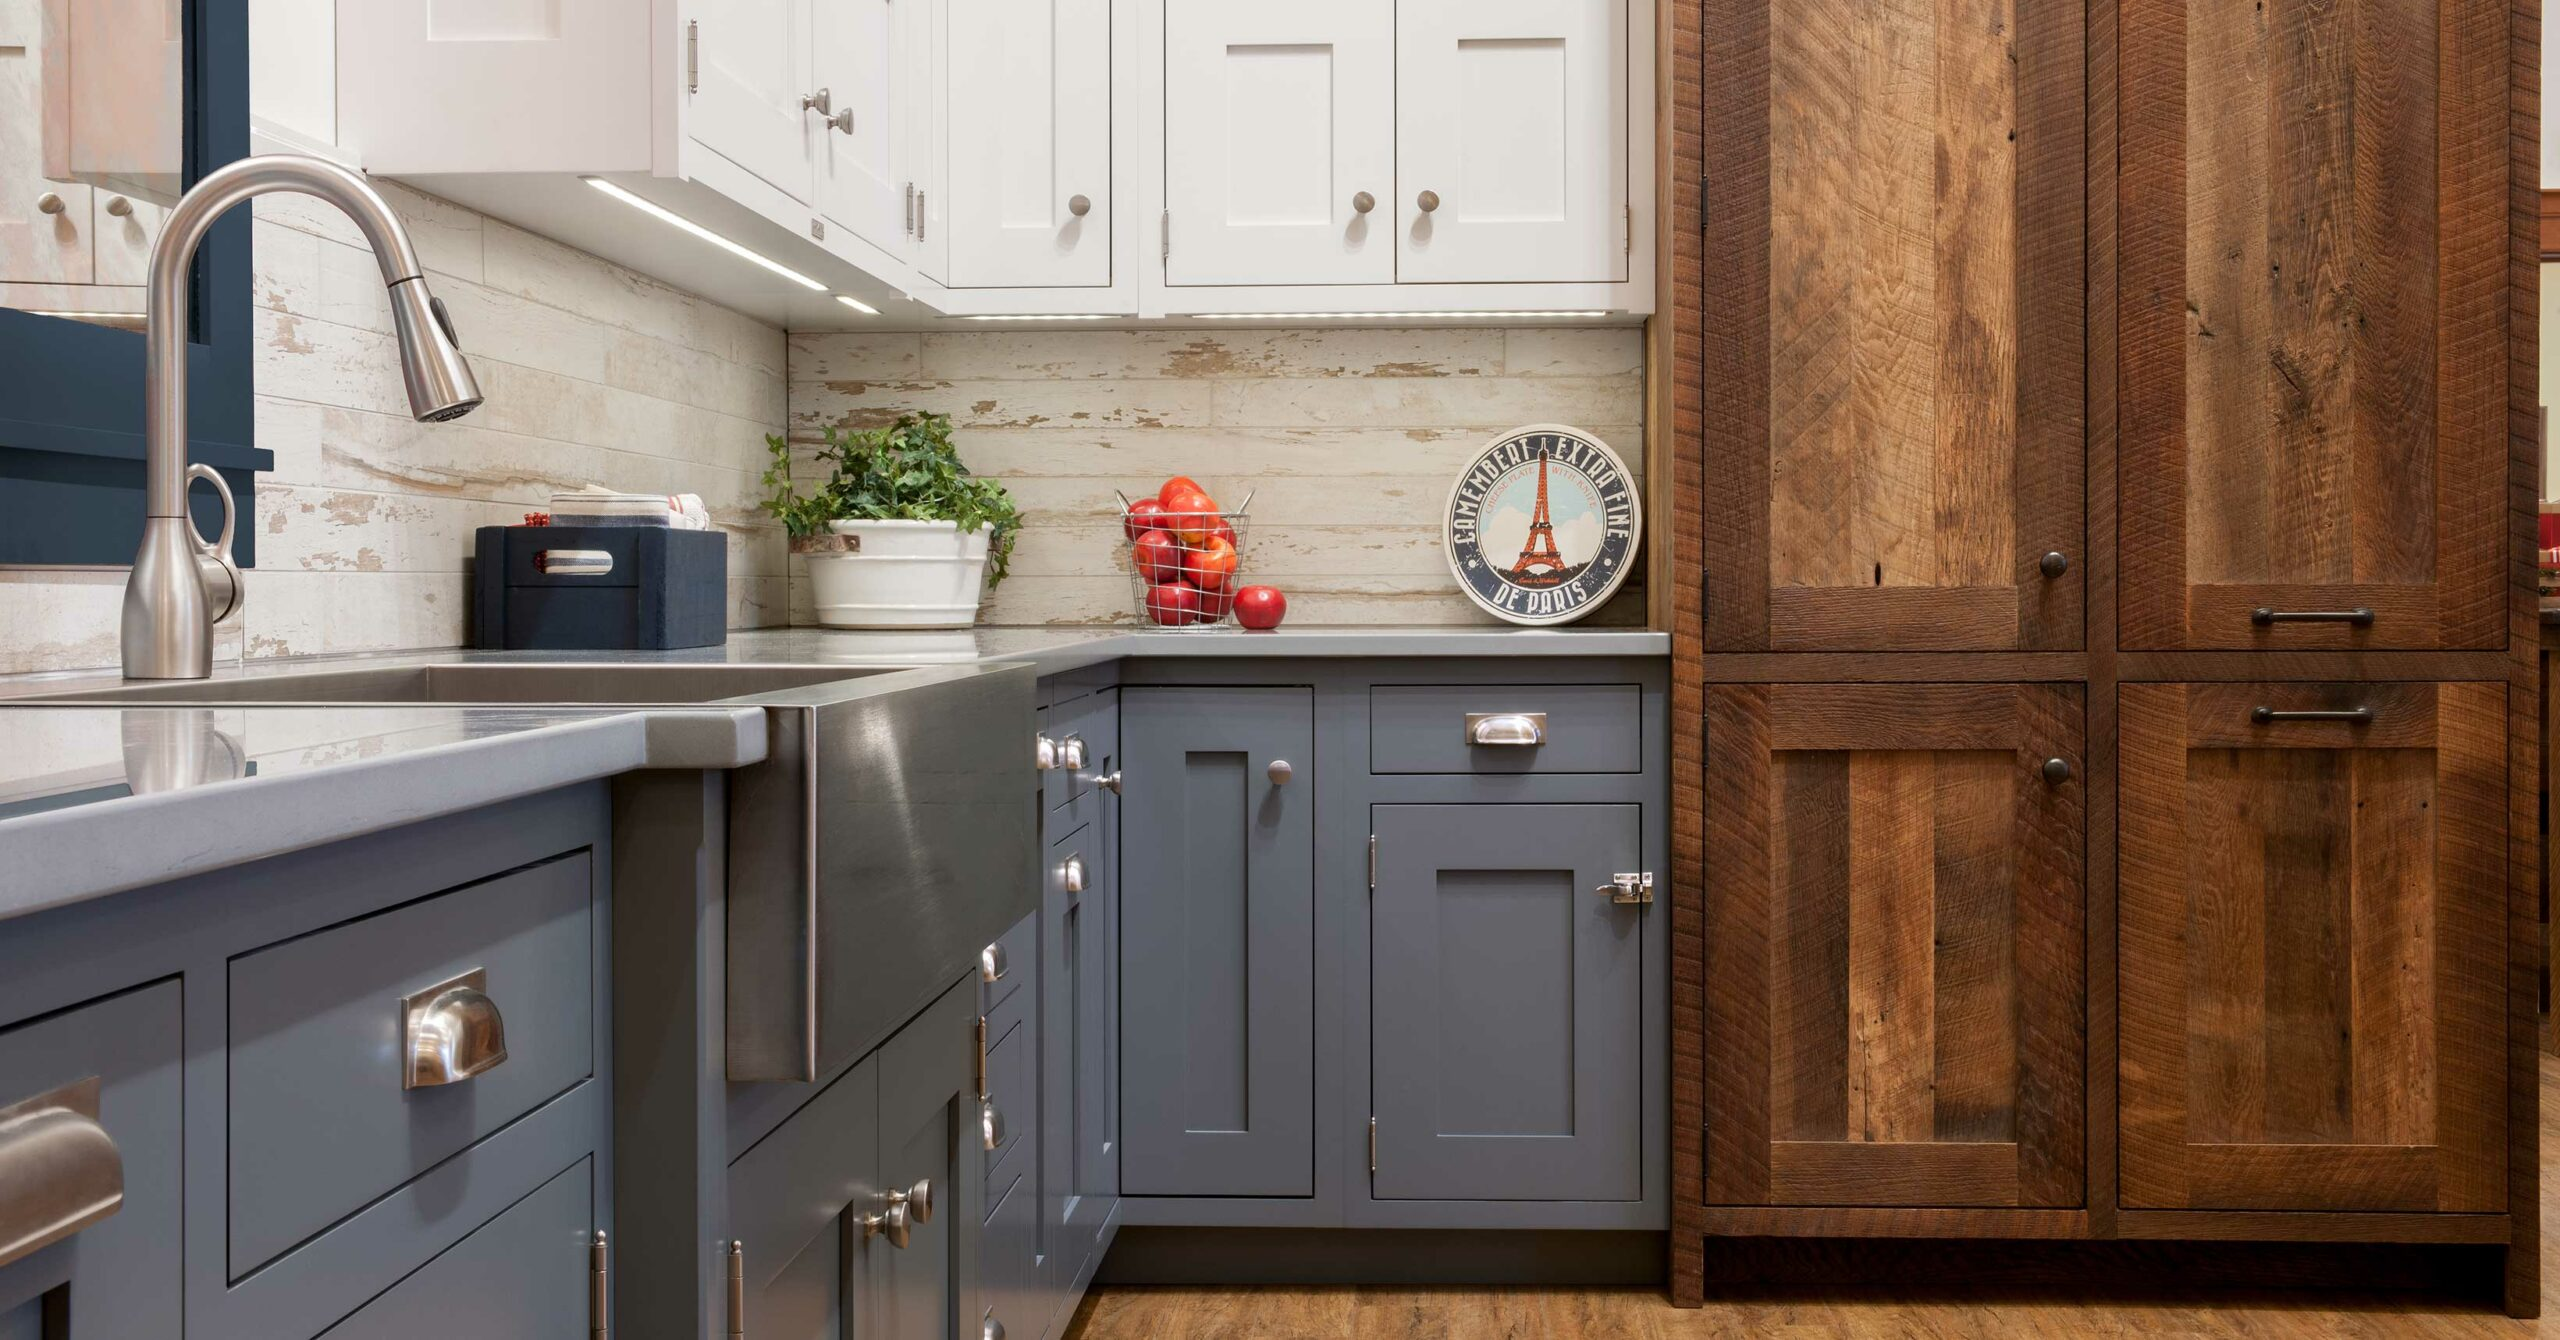 Crown Point Cabinetry Custom Cabinetry For Your Home